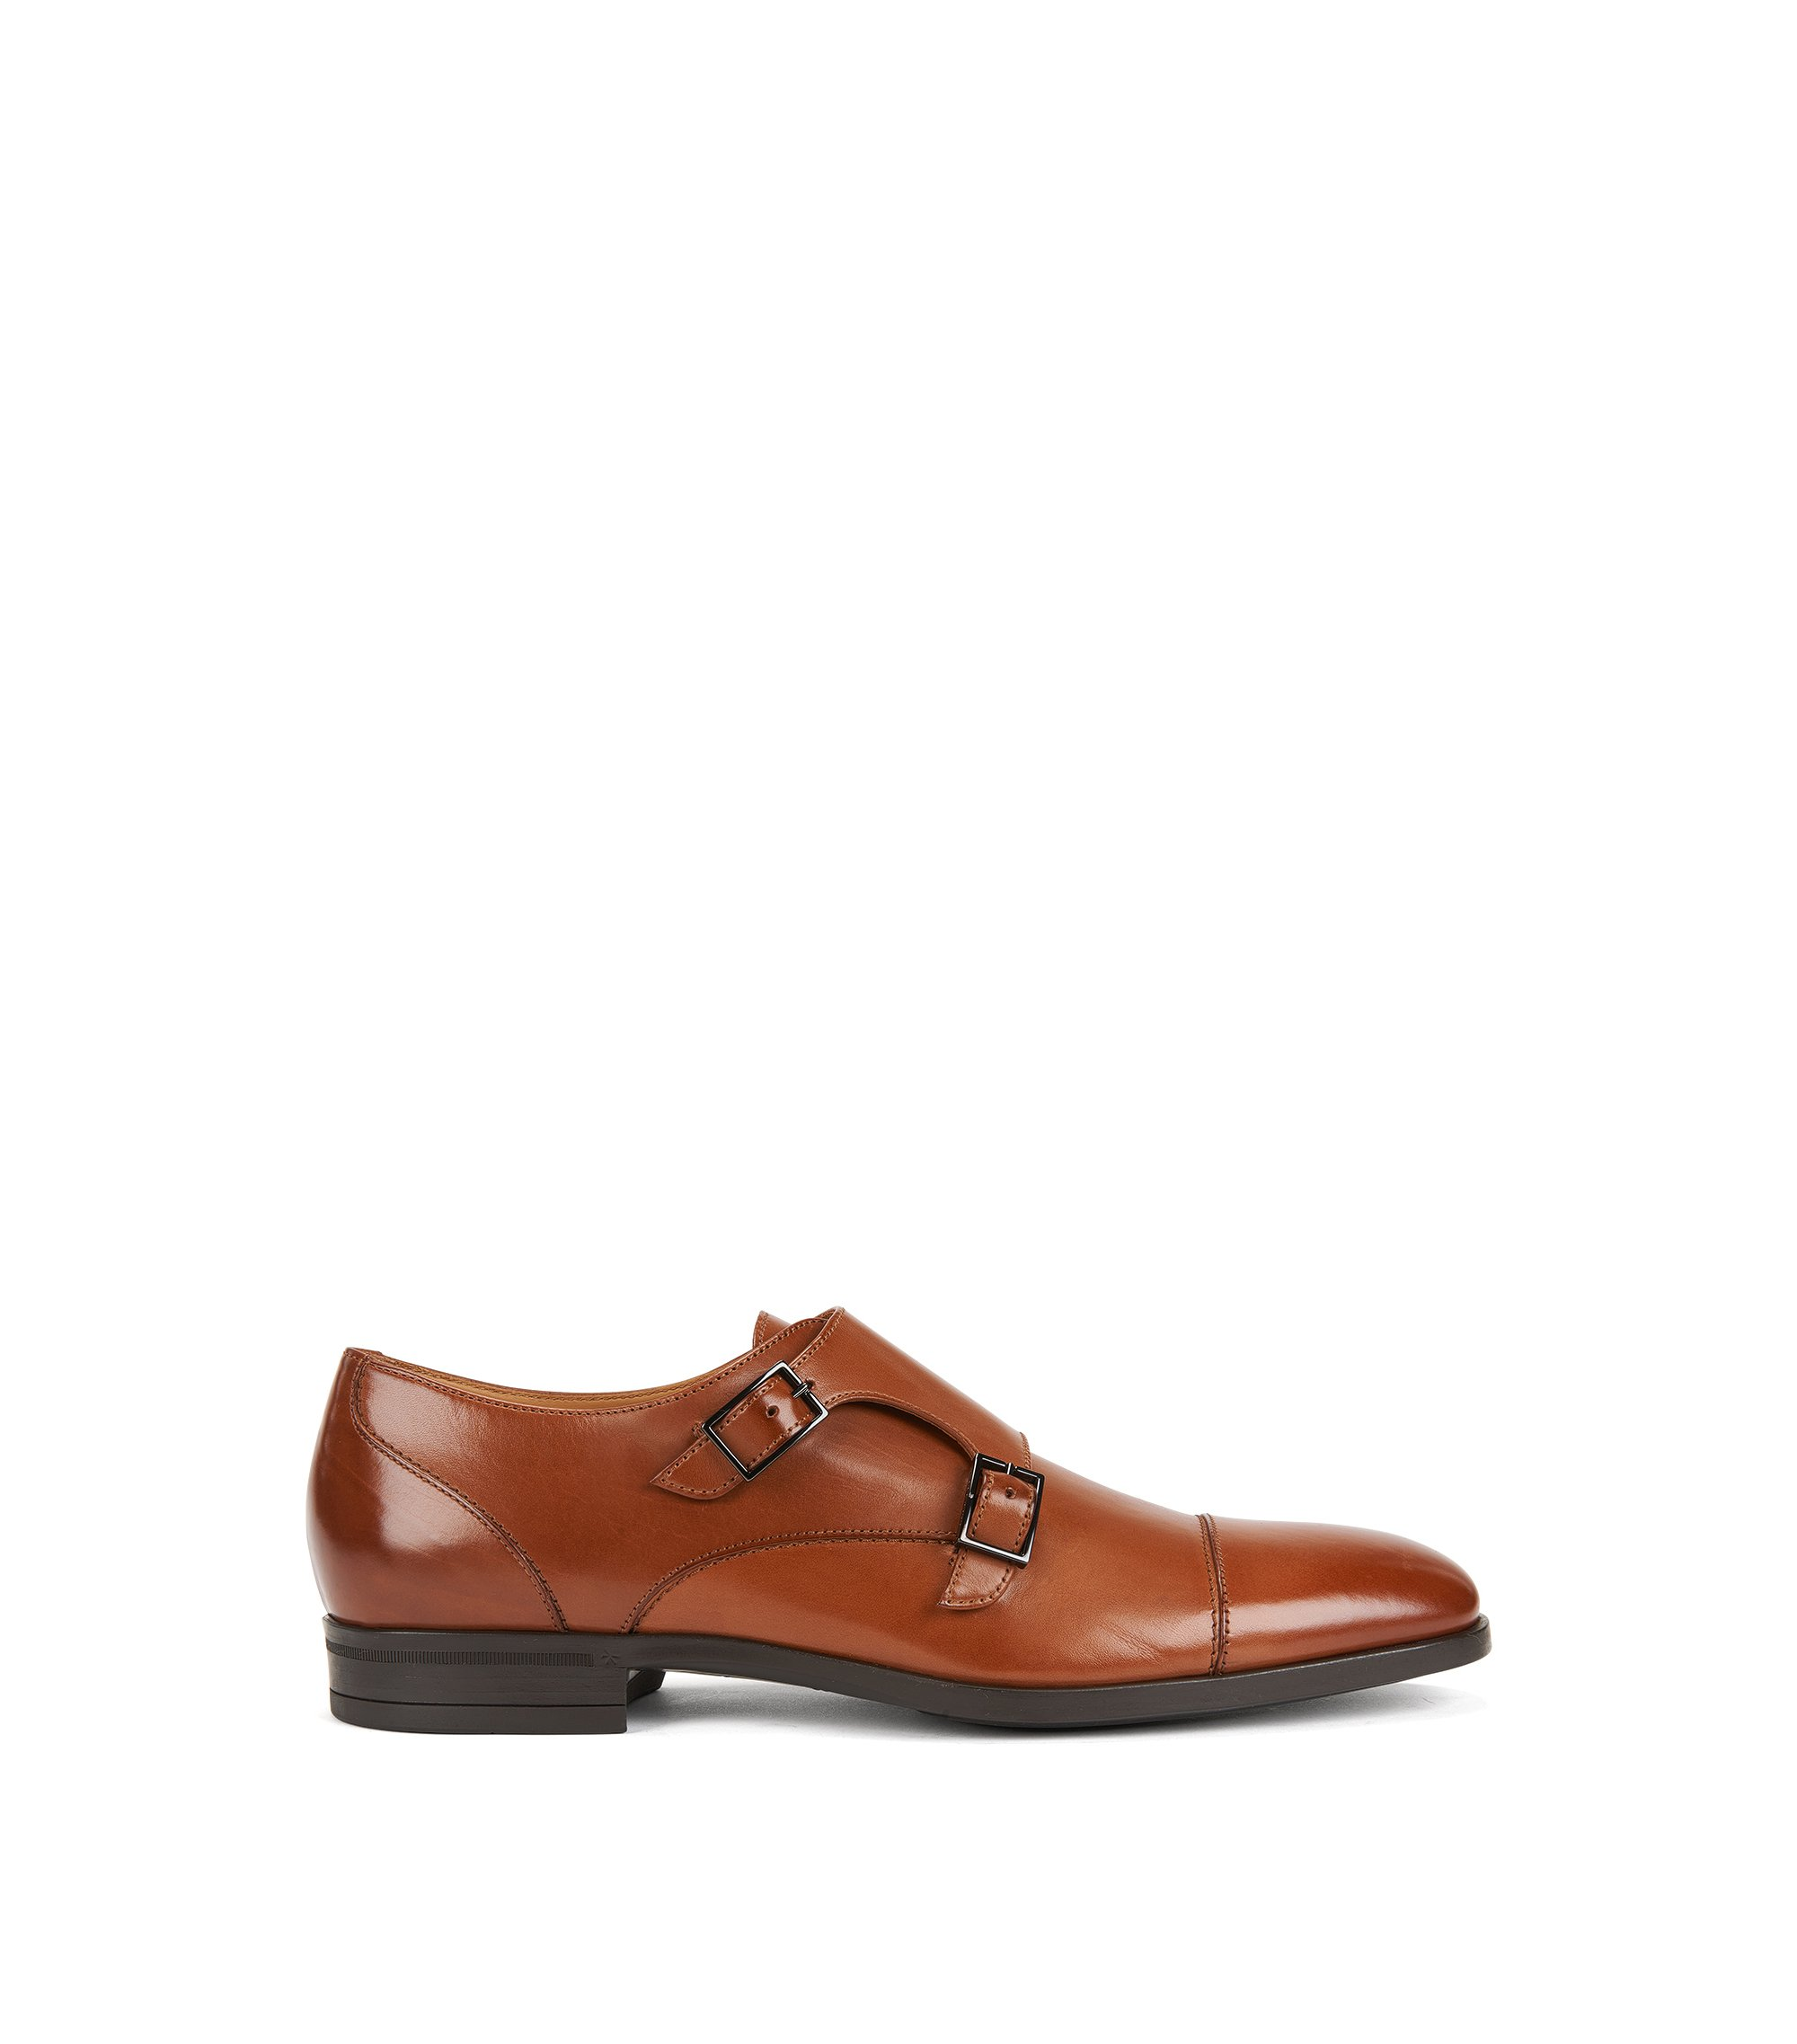 Leather Double Monk Strap Shoe | Kensington Monk Buwt, Brown